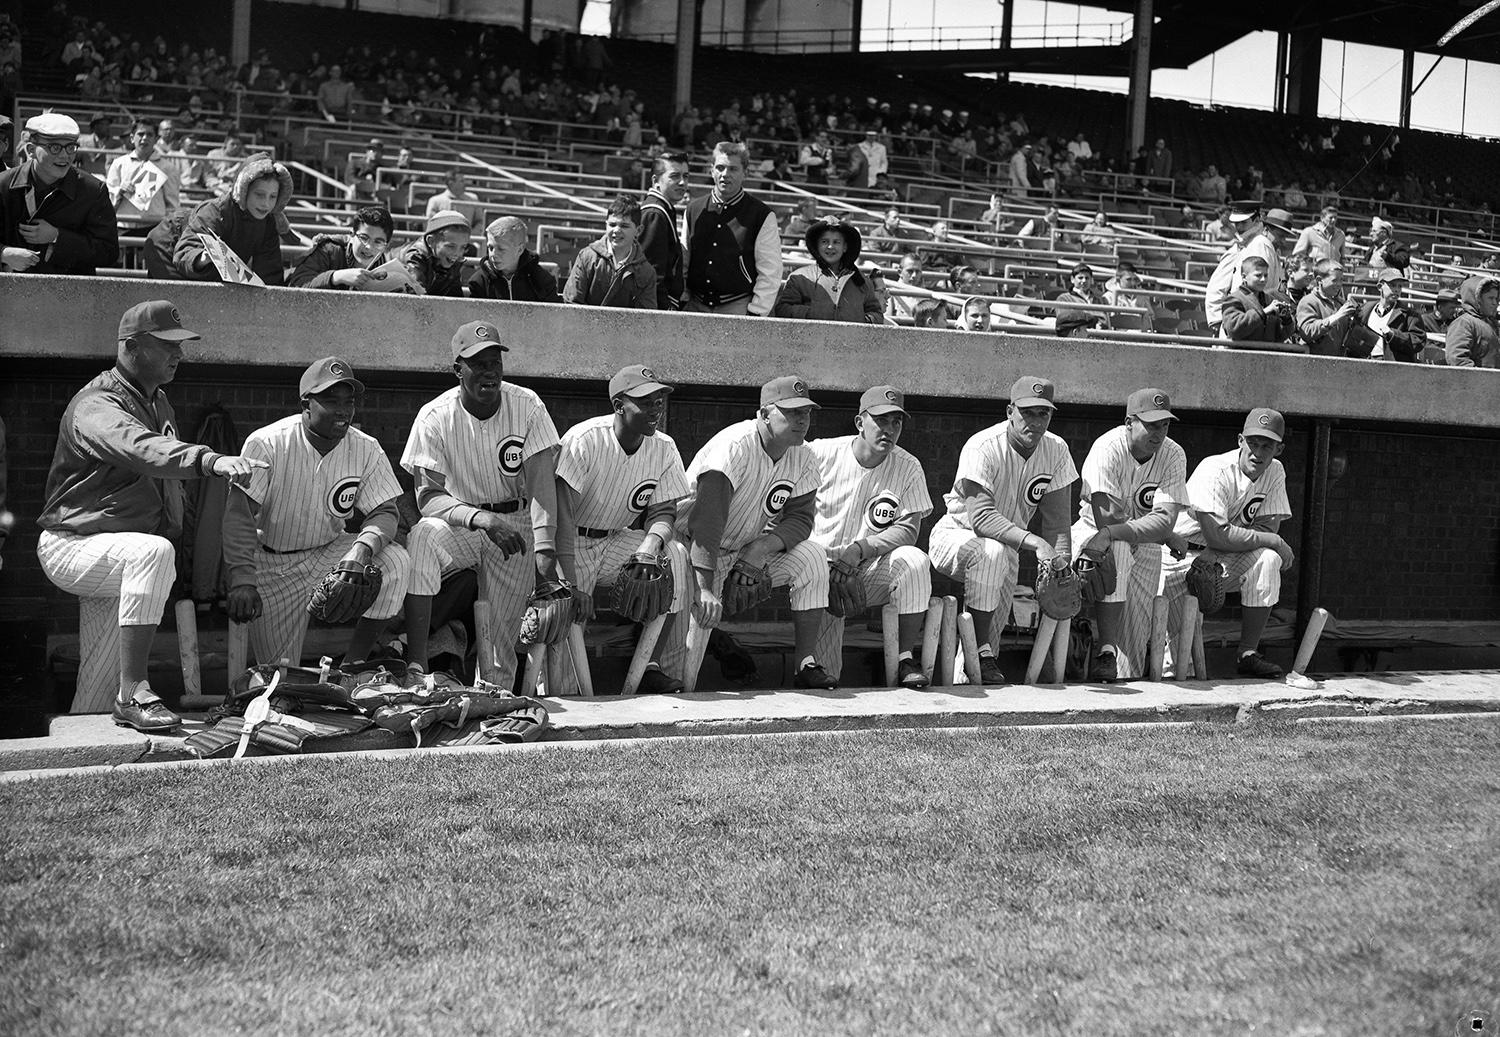 George Altman joined the Chicago Cubs in 1959, and would play with them for seven seasons in total. Pictured above with his teammates in 1959  (L to R): manager Bob Scheffing, Tony Taylor, George Altman, Ernie Banks, Walt Moryn, Earl Averill, Dale Long, Bobby Thomson and Sammy Taylor.  (National Baseball Hall of Fame and Museum)